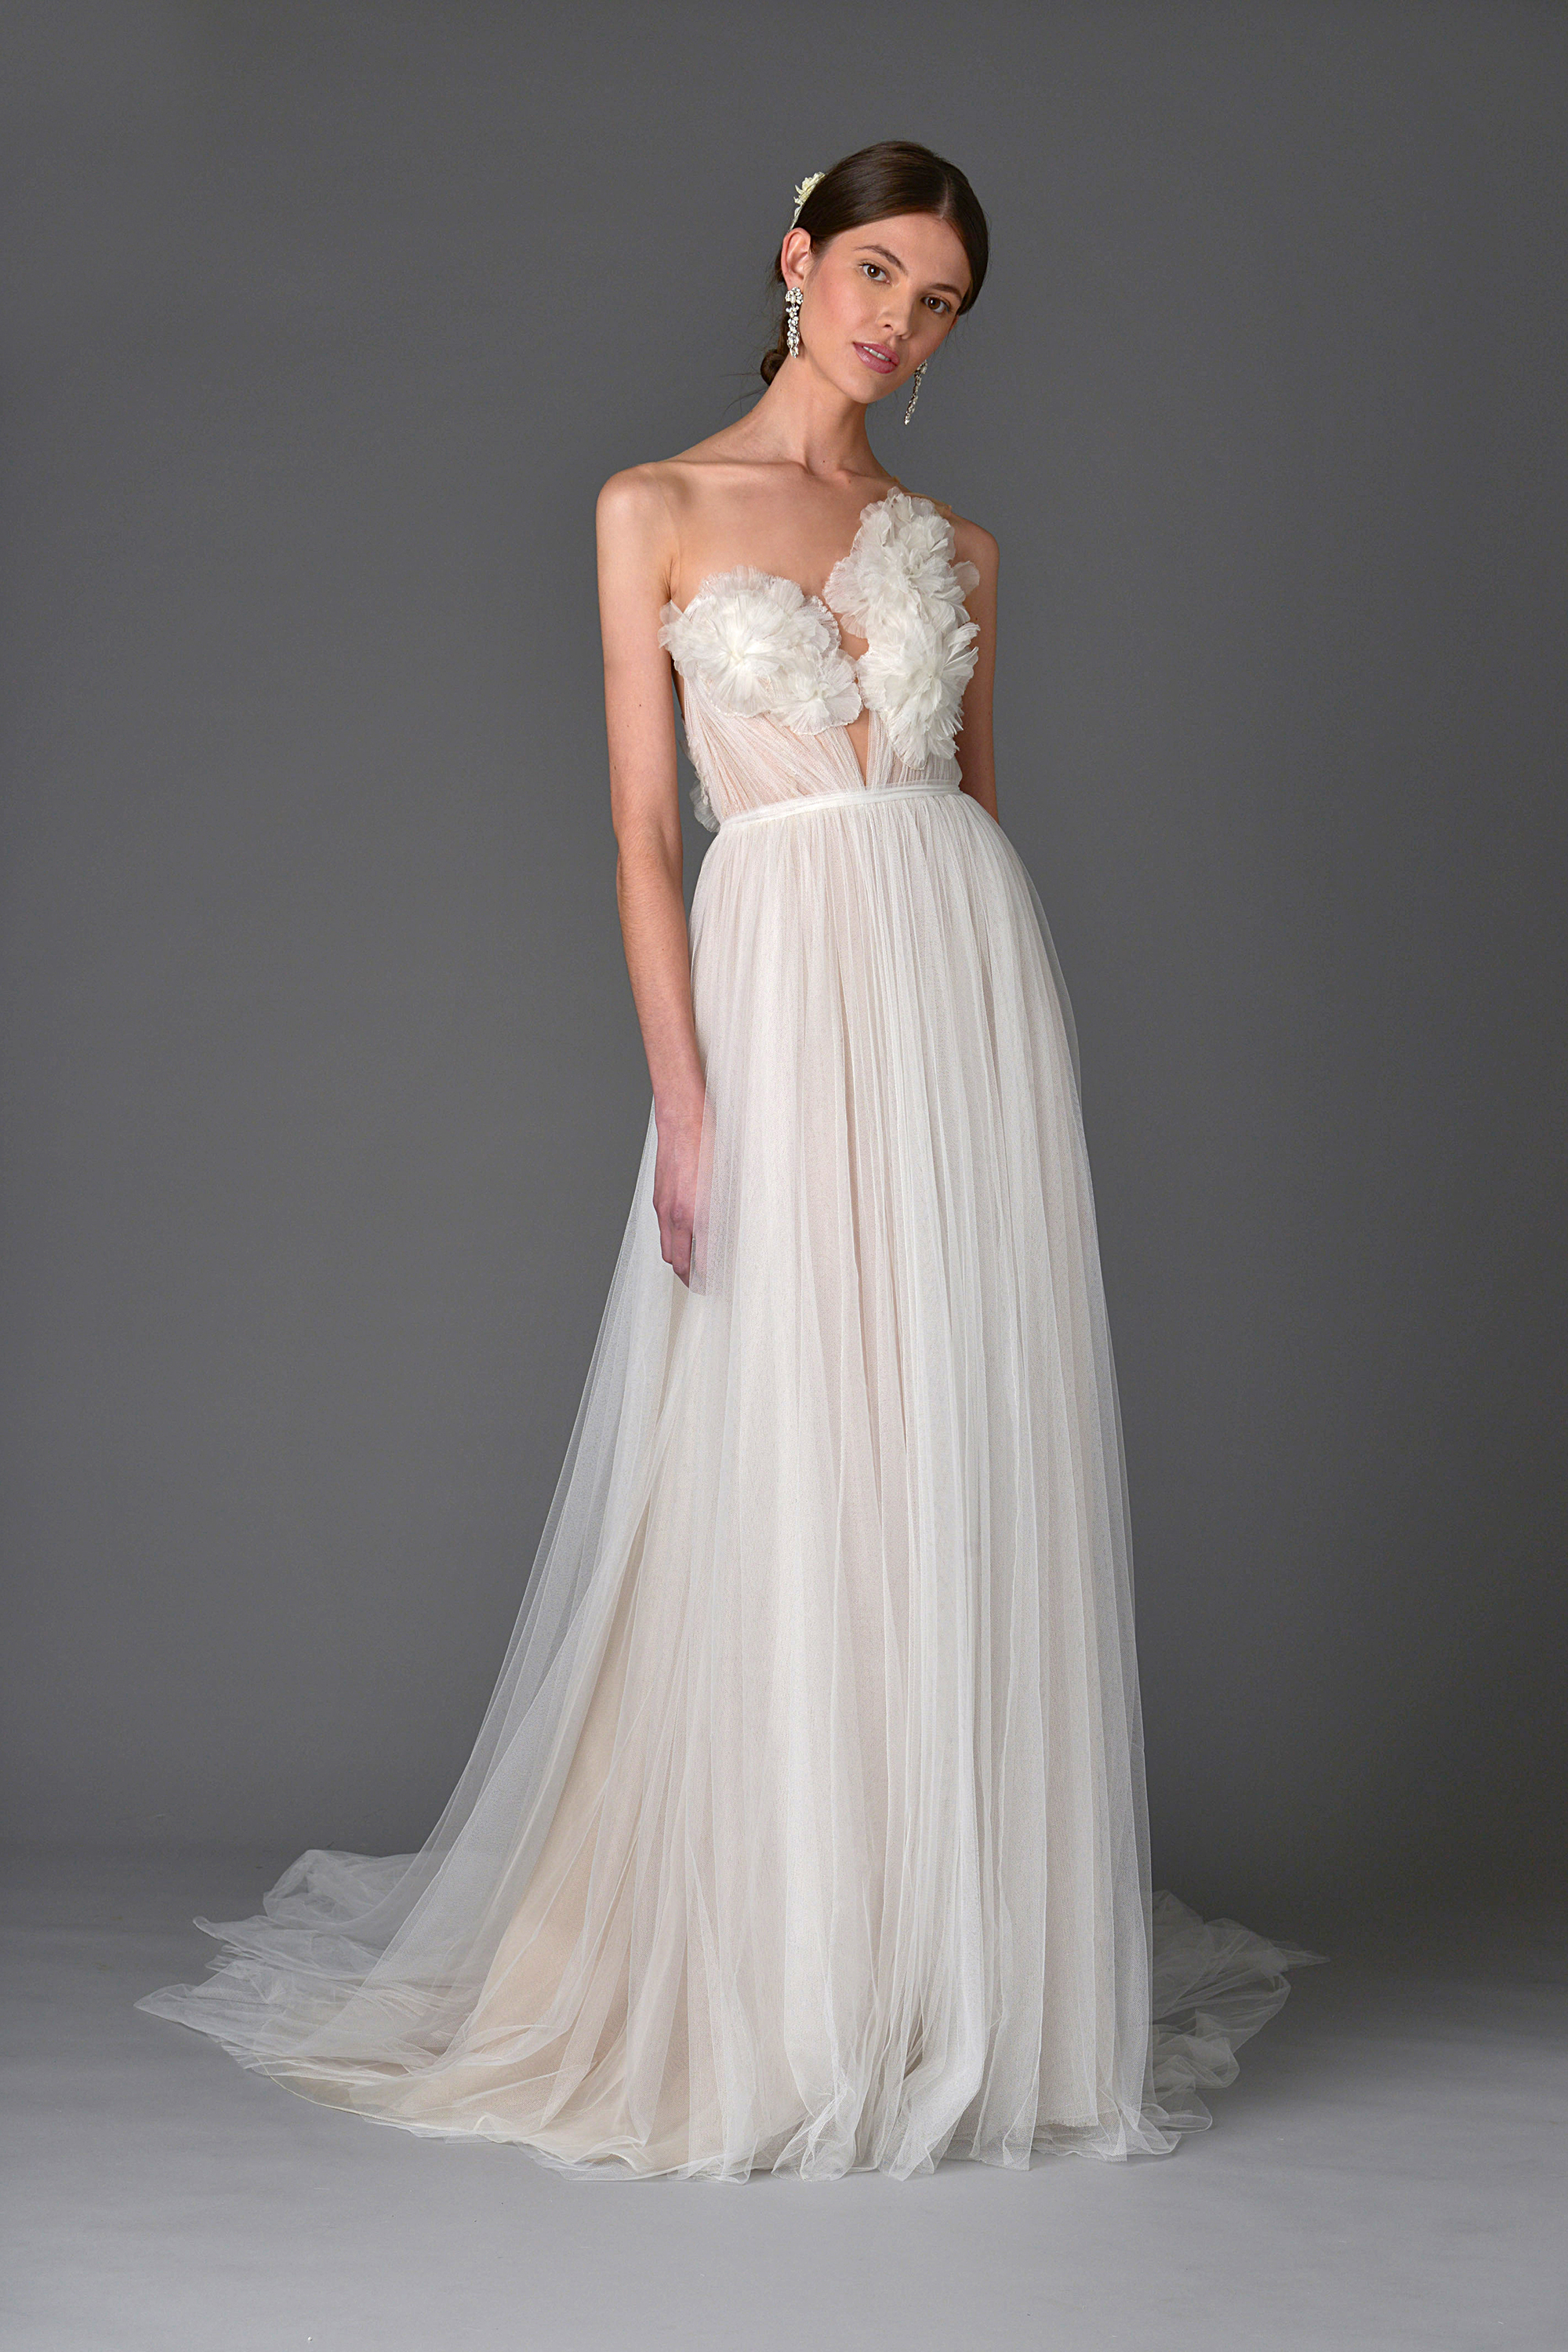 Beachy Wedding Dresses wedding dresses for the beach - points to remember UHXZCGL